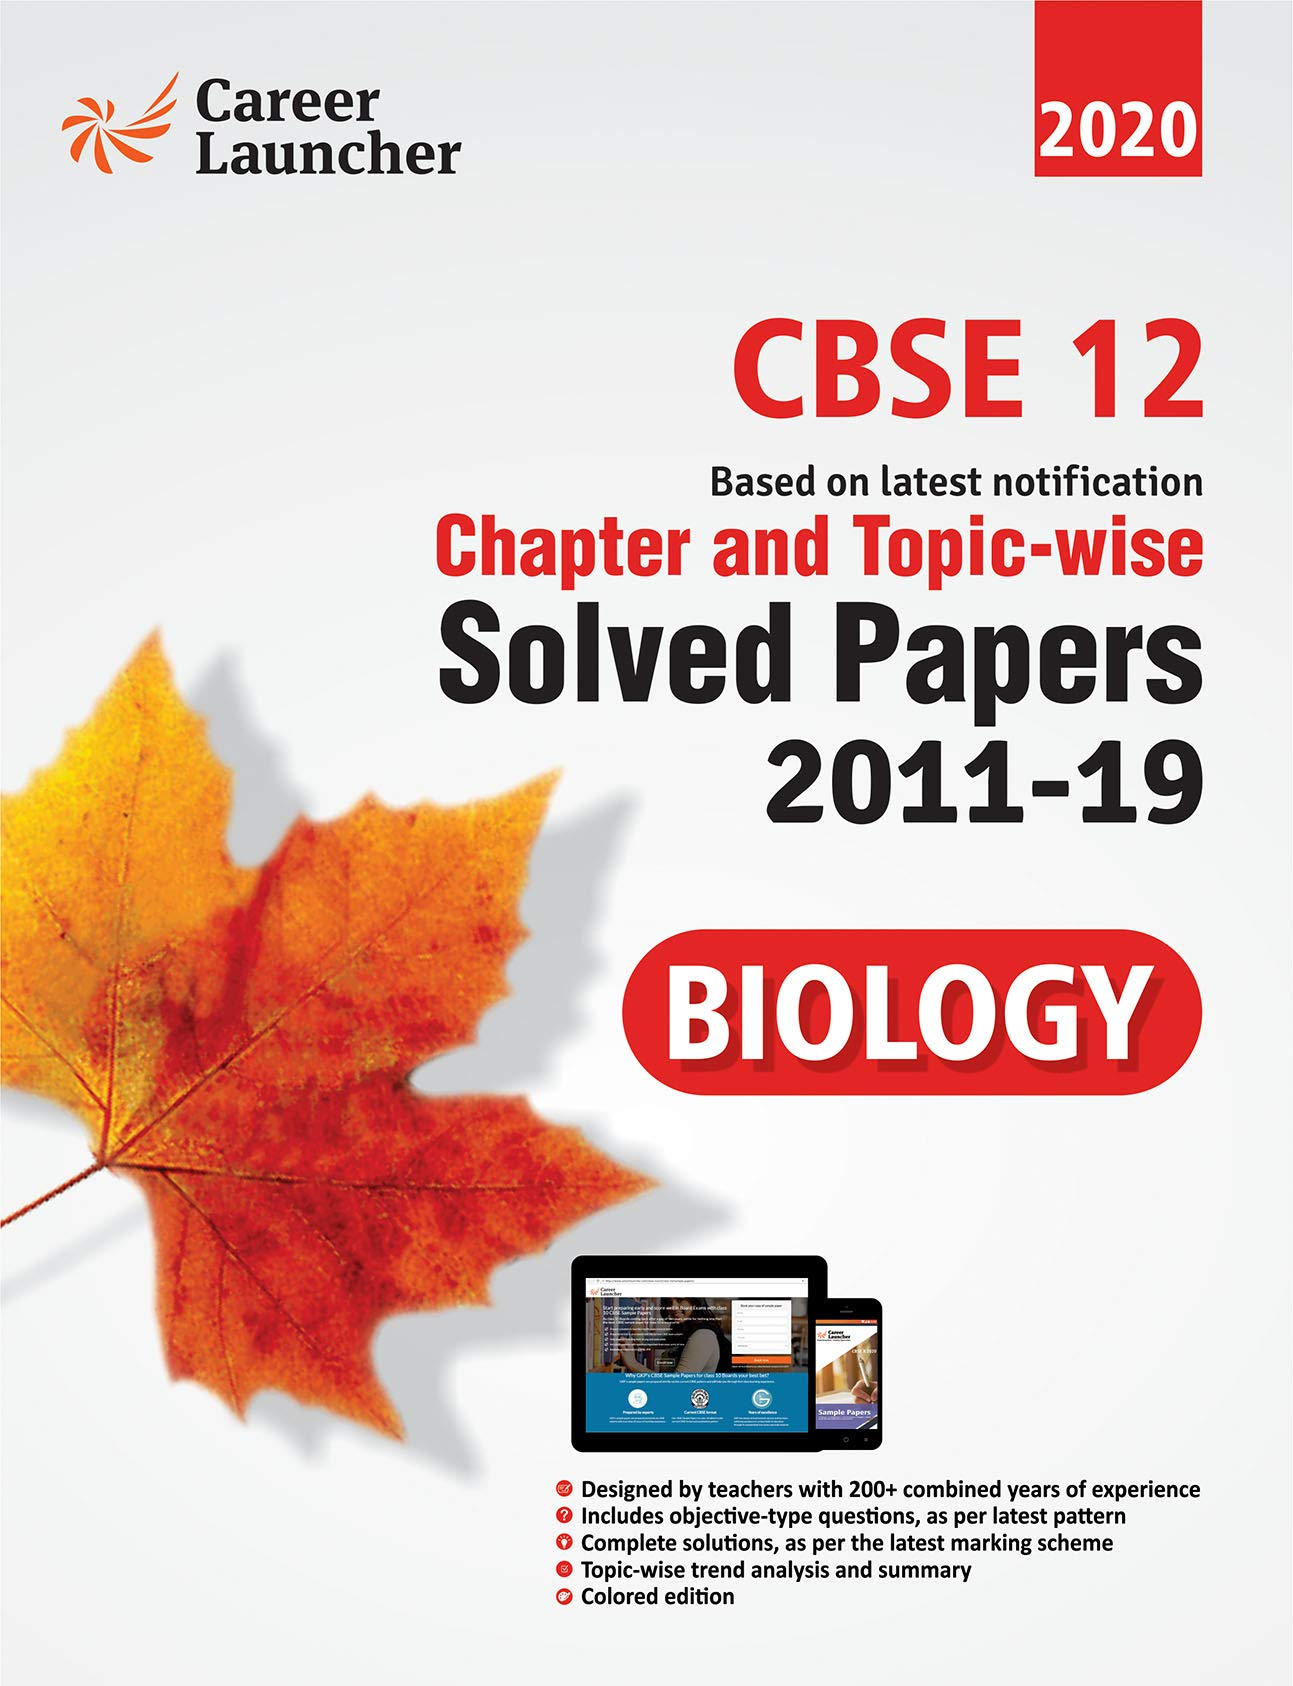 CBSE Class XII 2020 - Biology Chapter and Topic-wise Solved Papers 2011-2019 Paperback – 1 June 2019